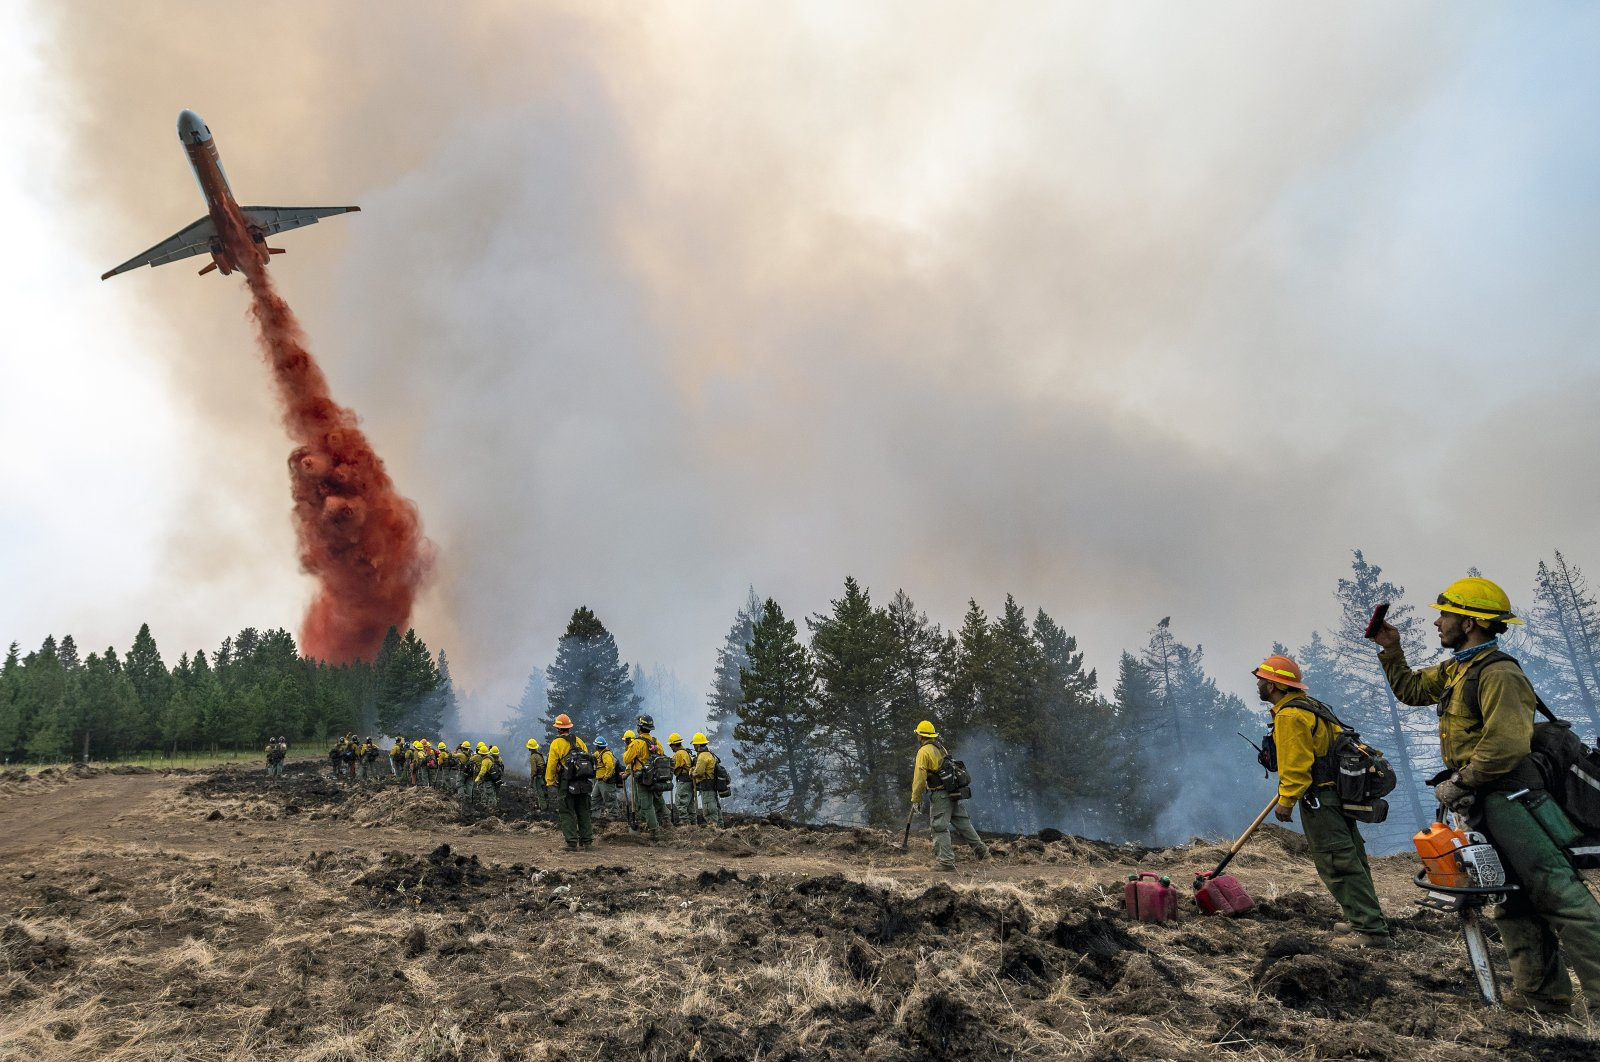 Wildland firefighters watch and take video with their cellphones as a plane drops fire retardant on Harlow Ridge above the Lick Creek Fire, southwest of Asotin, Washington, U.S., July 12, 2021. (Lewiston Tribune via AP)